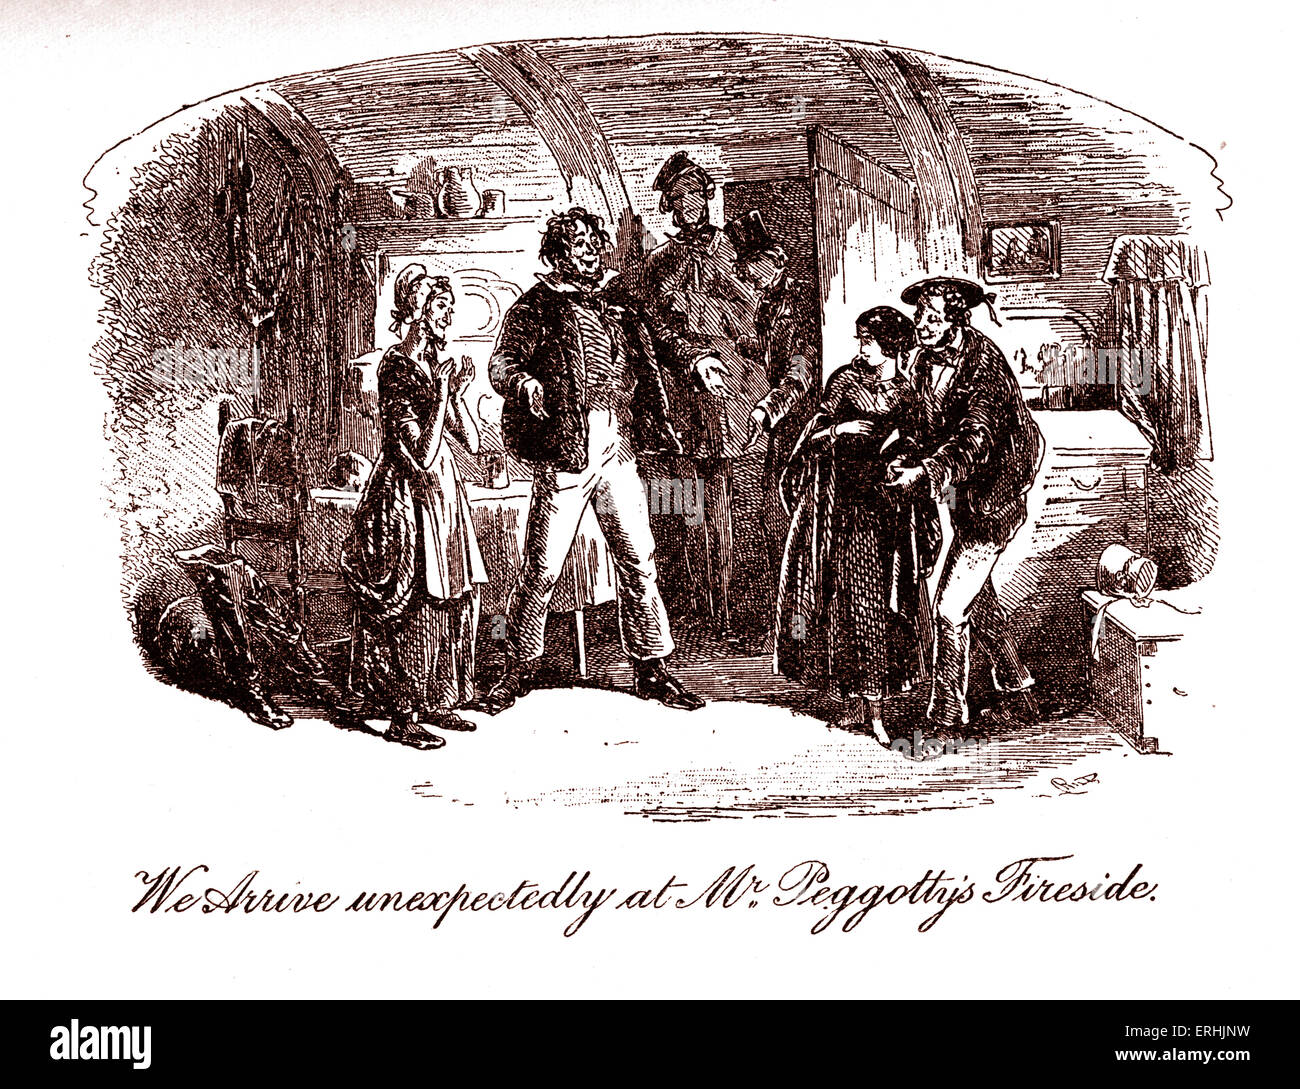 character peggotty stock photos character peggotty stock images david copperfield by charles dickens illustration by phiz hablot knight browne caption